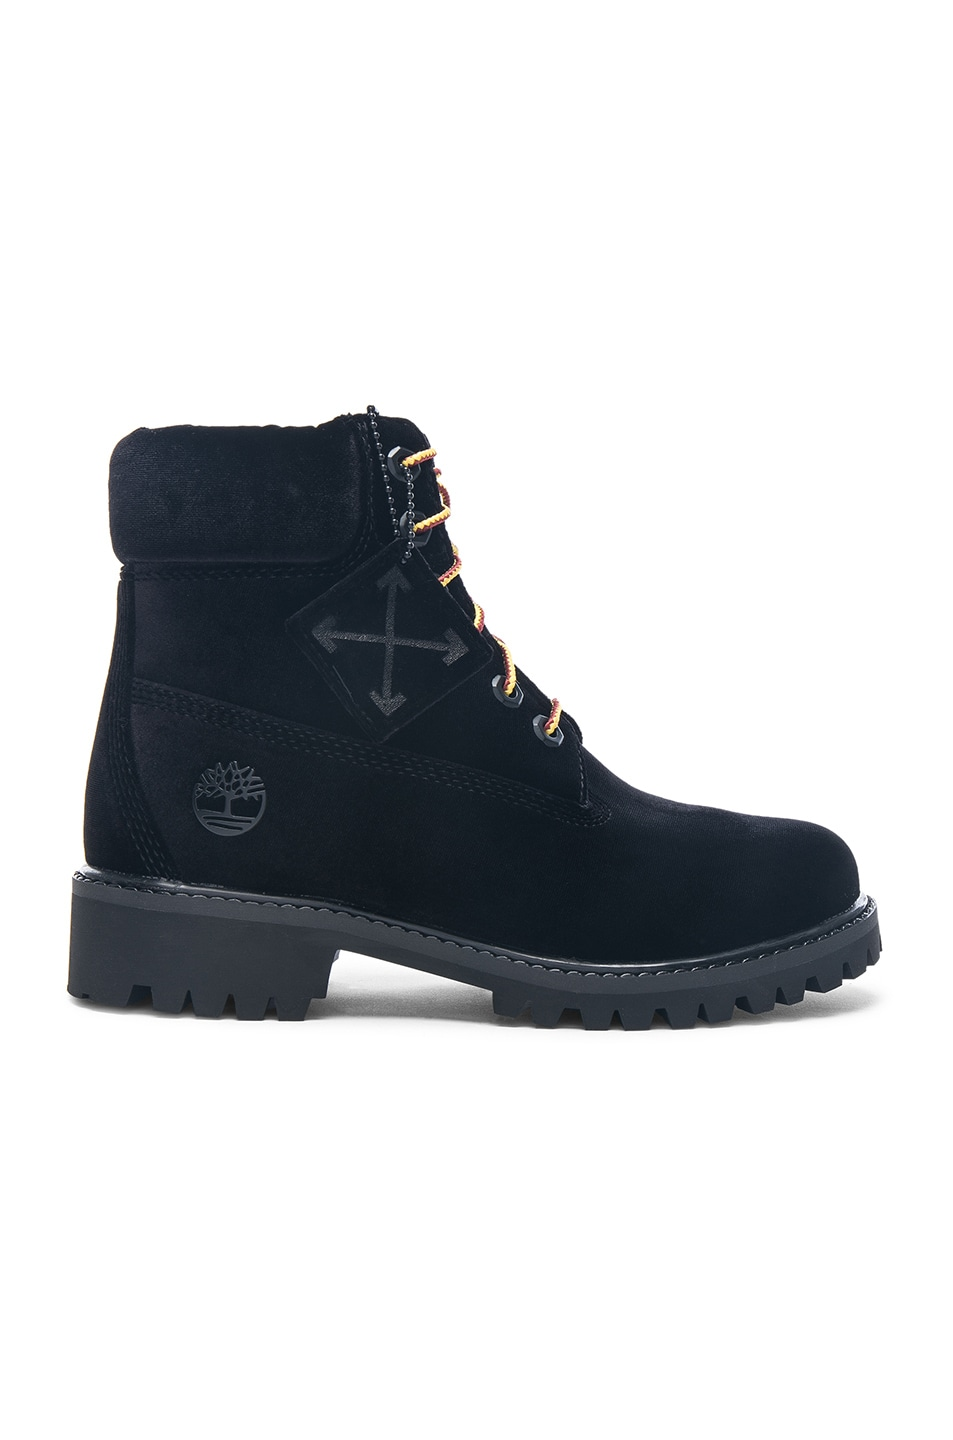 Image 1 of OFF-WHITE x Timberland Velvet Hiking Boots in Black